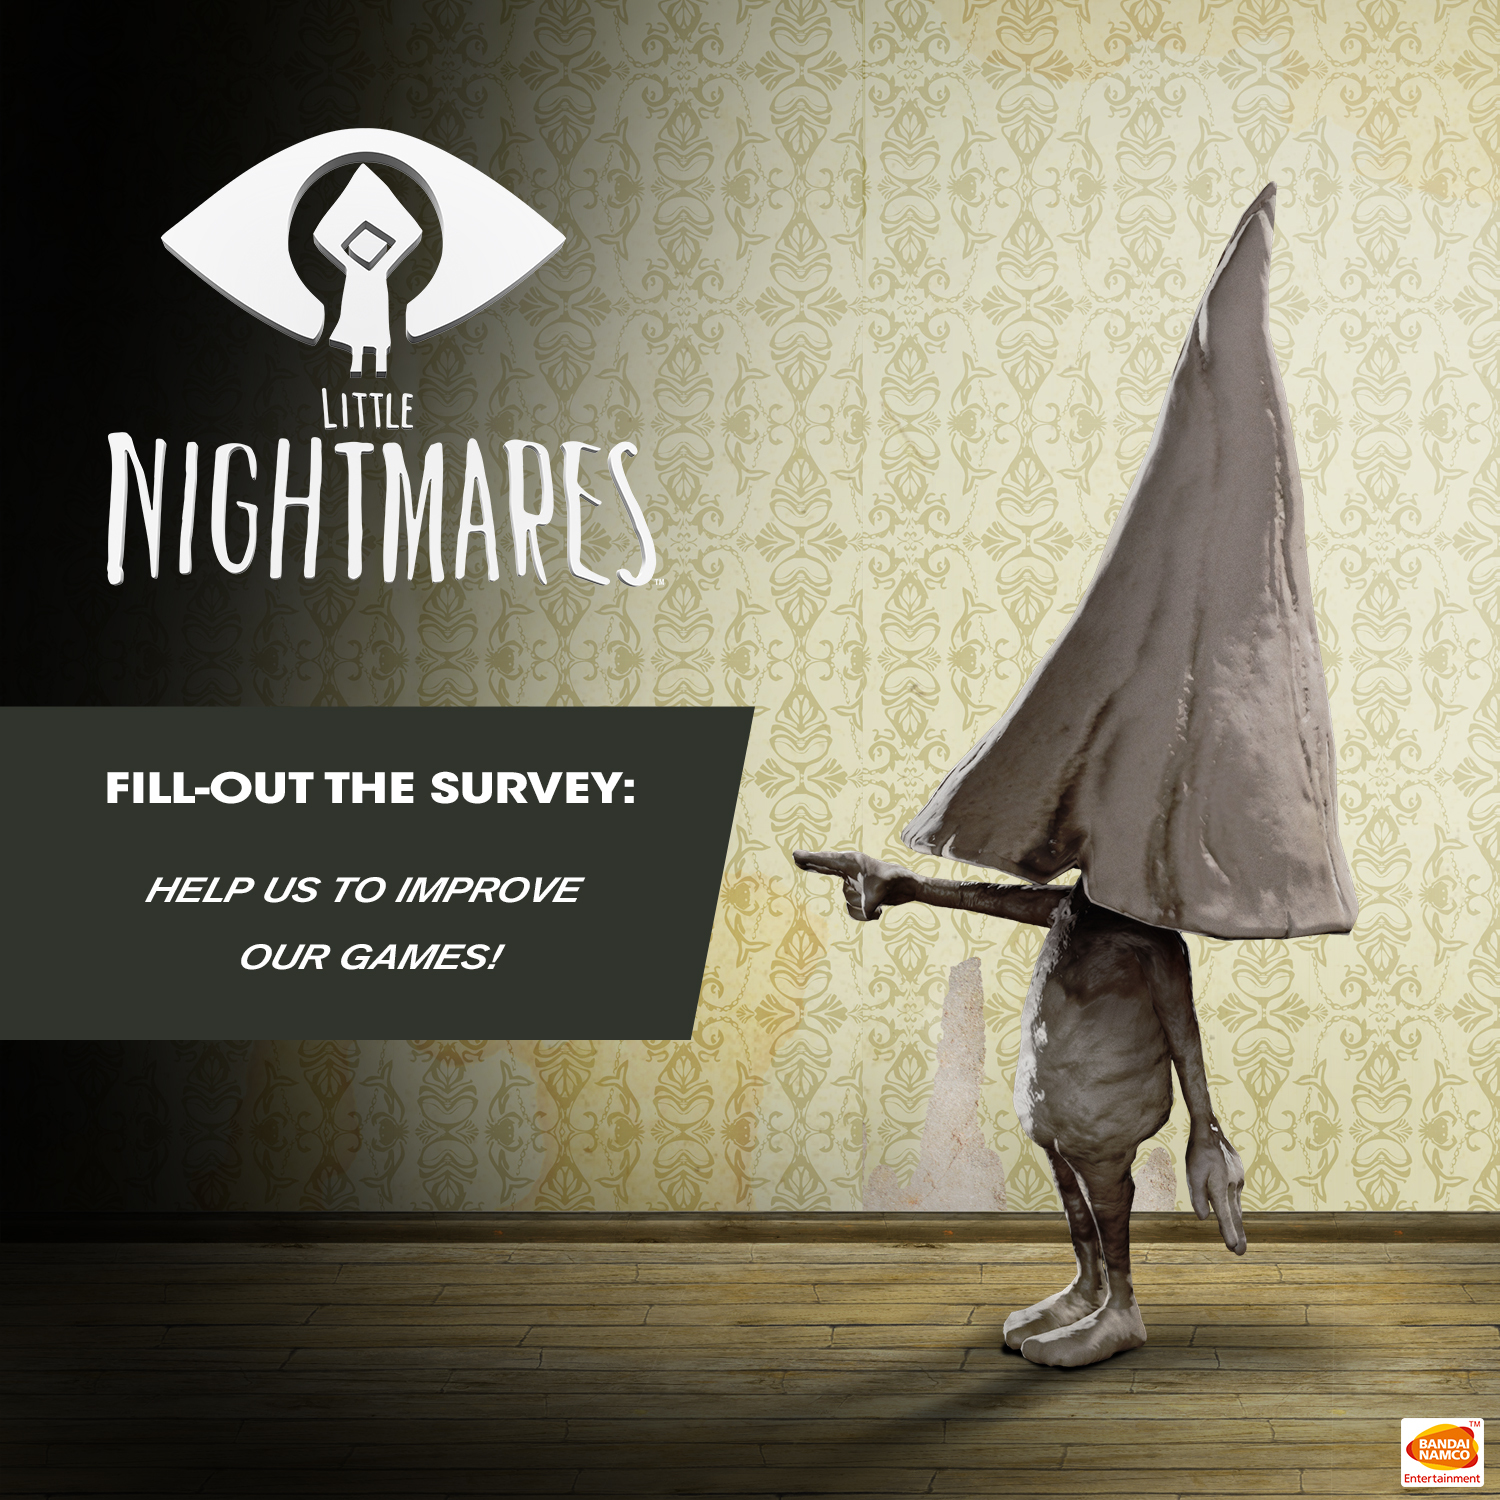 Little Nightmares :: Little Nightmares Survey - Your opinion